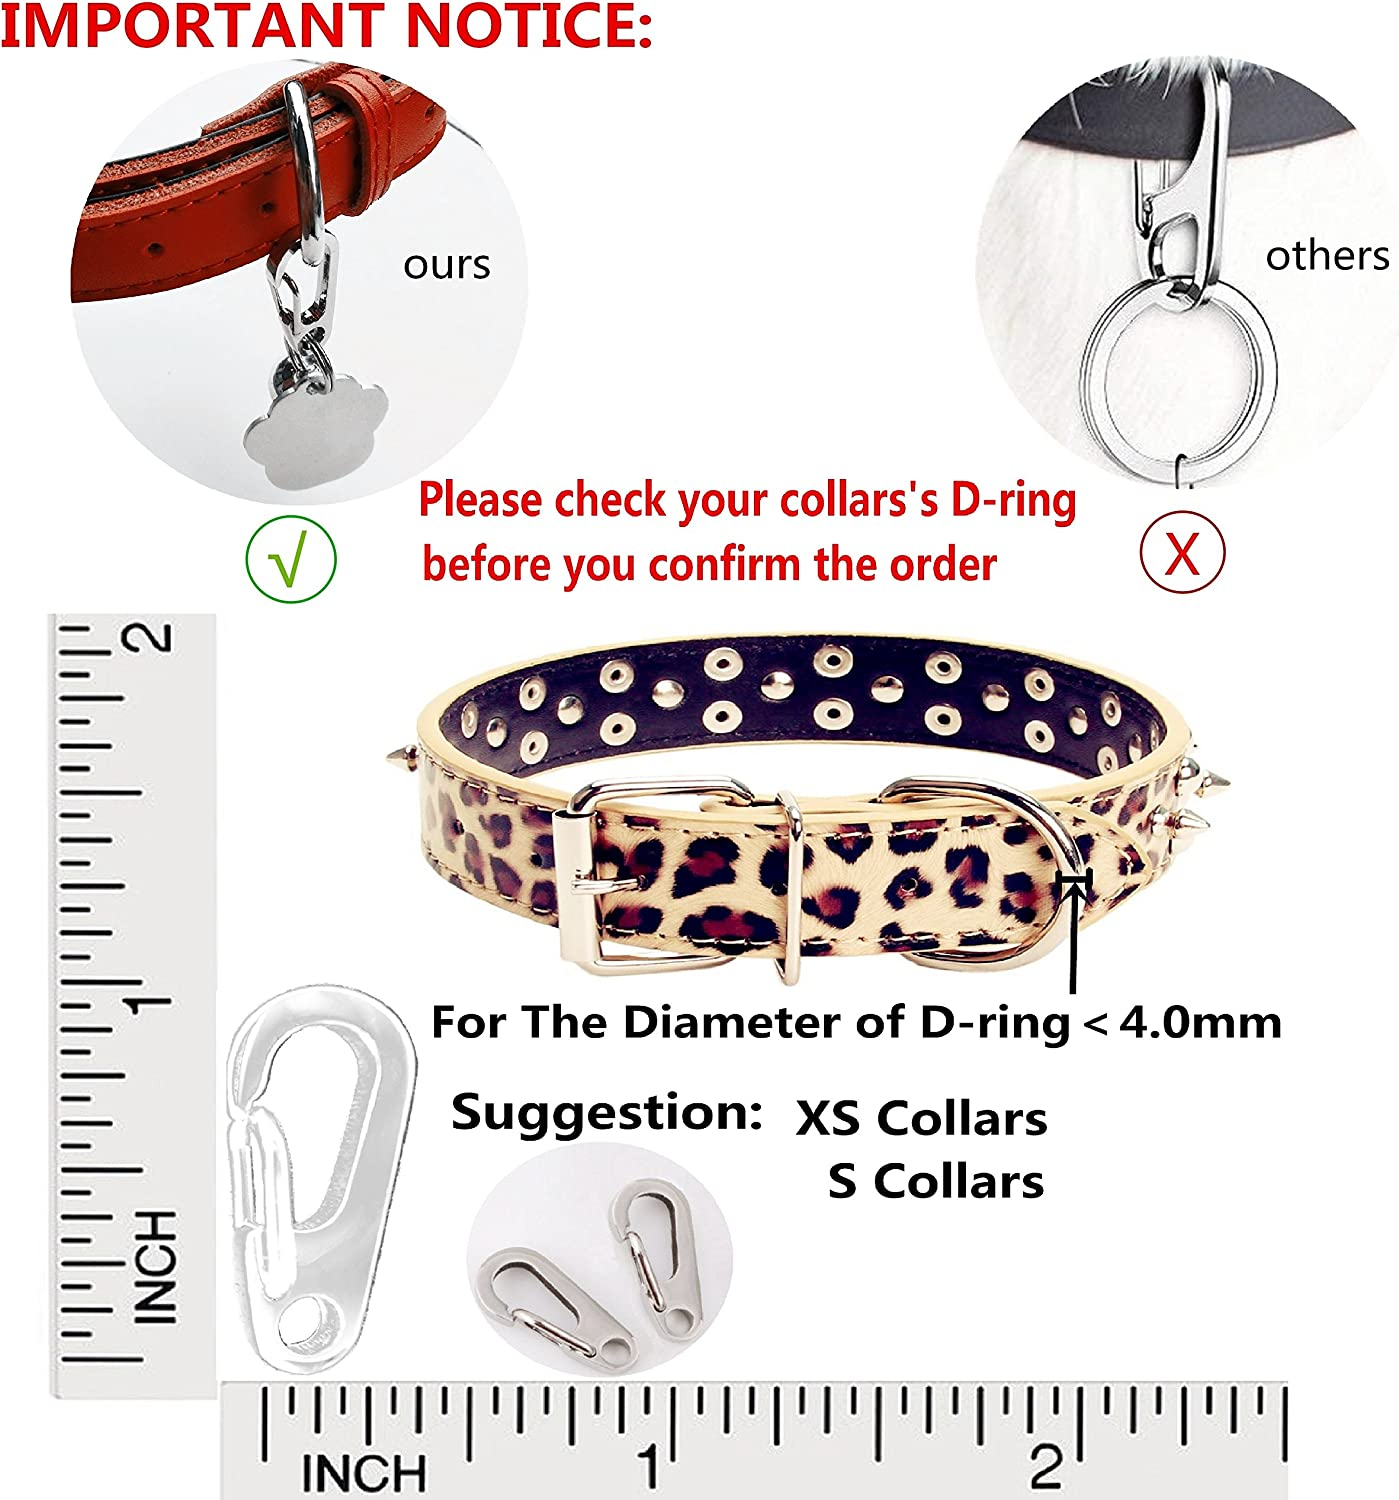 Sundesign Stainless Steel Dog Tag Quick Clips Perfect for Dogs and Cats